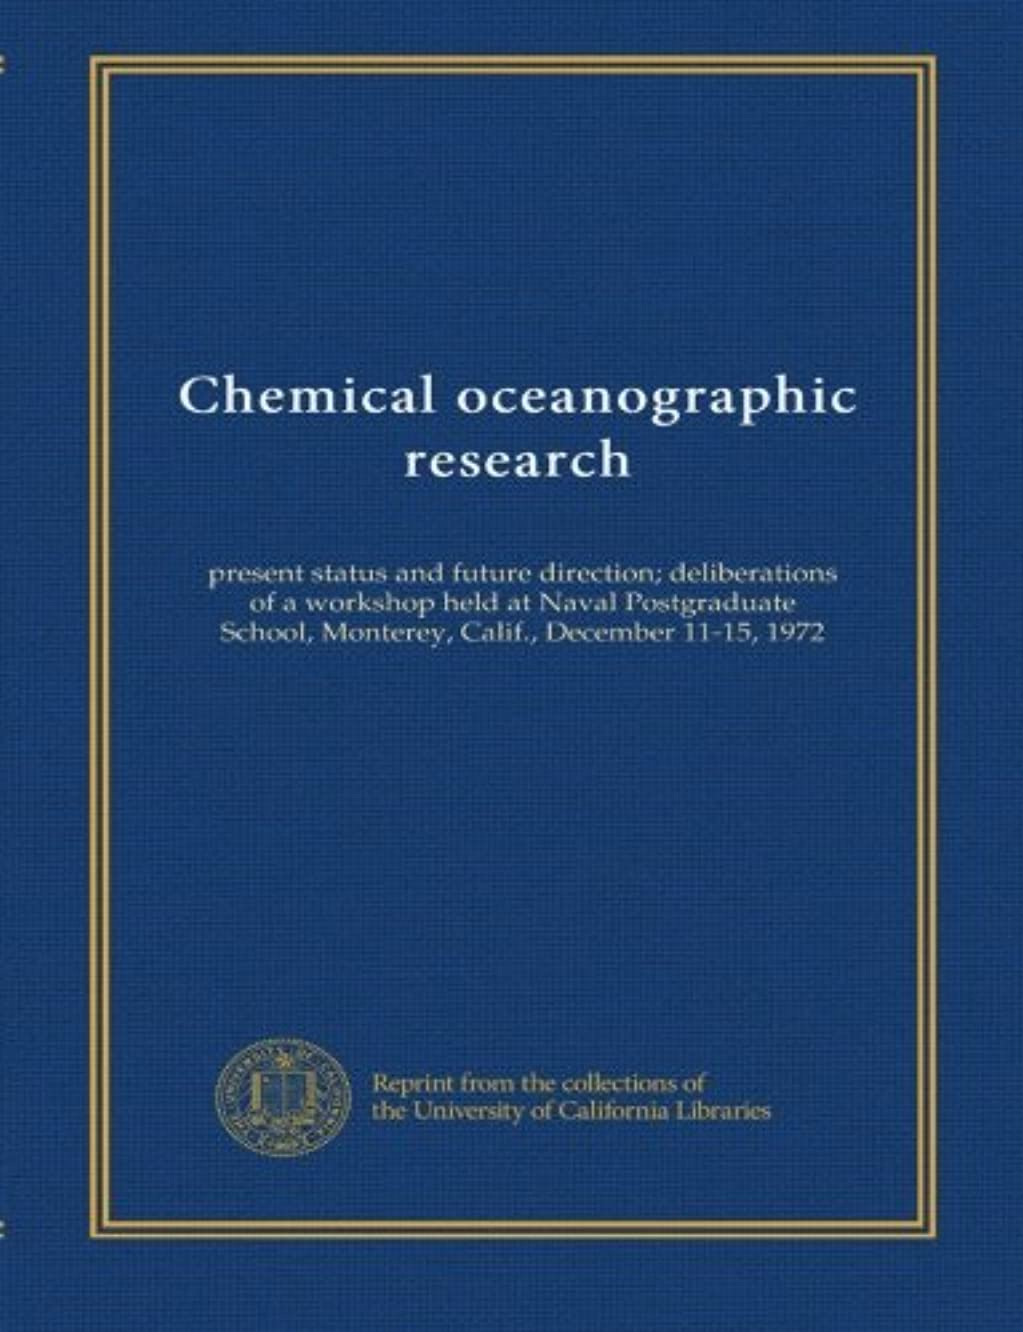 Chemical oceanographic research: present status and future direction; deliberations of a workshop held at Naval Postgraduate School, Monterey, Calif., December 11-15, 1972